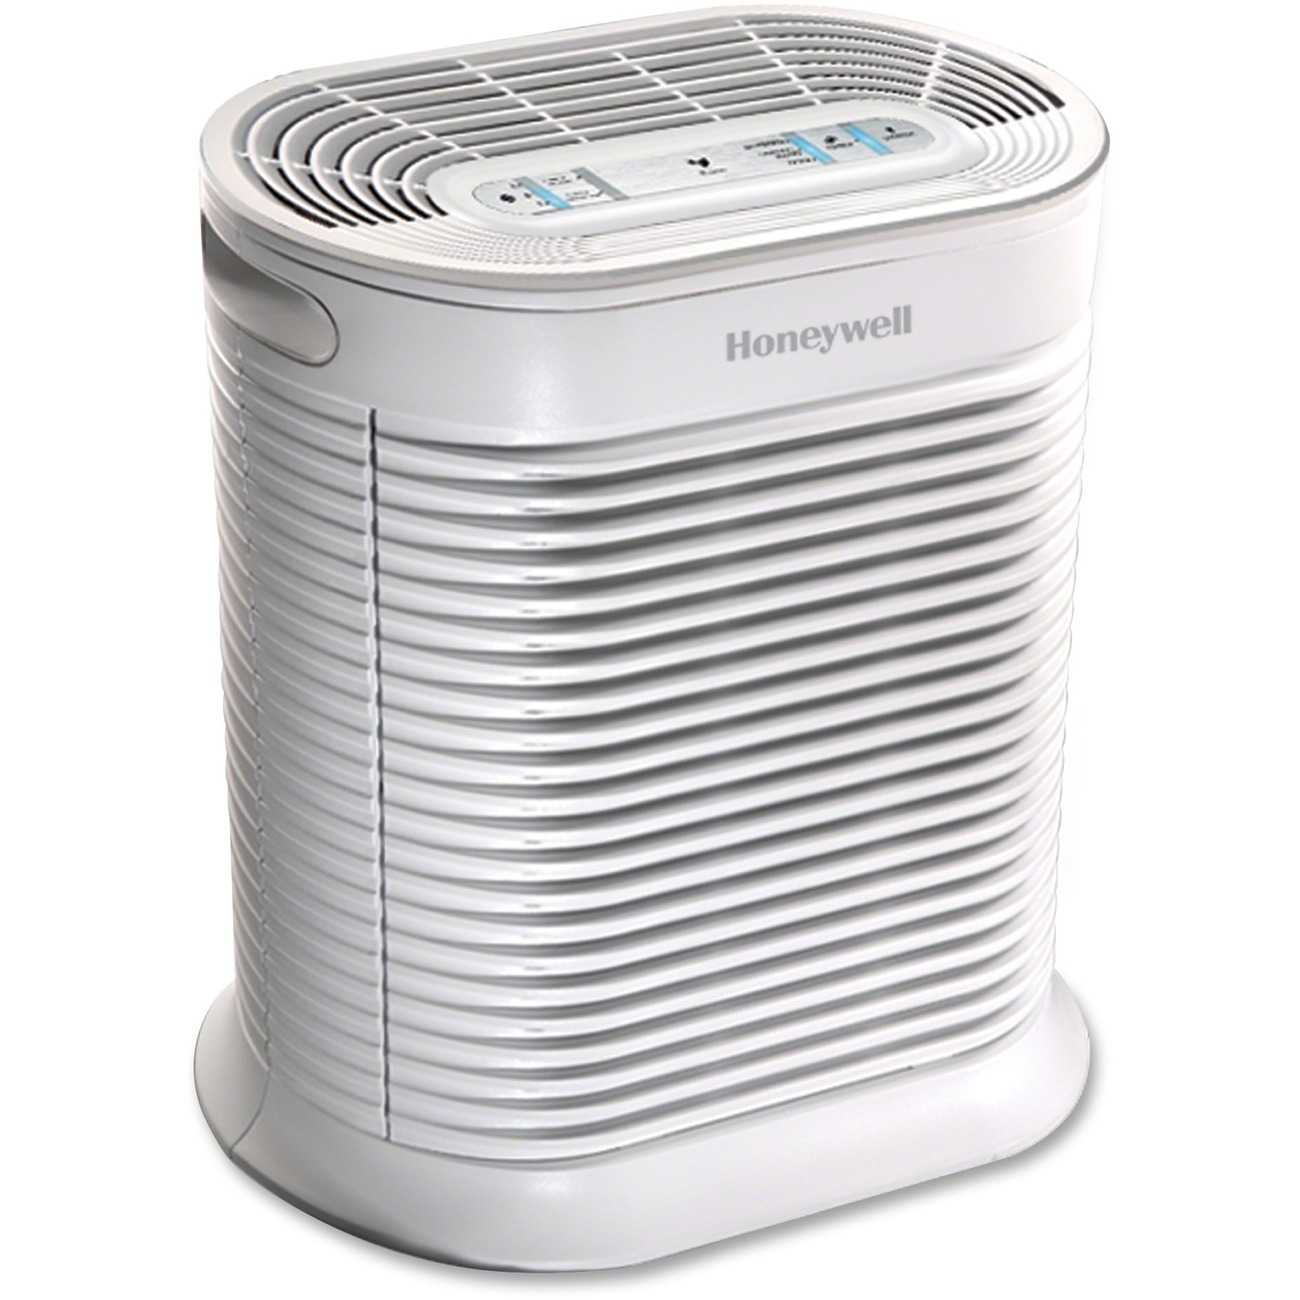 Hepa Air Cleaner 5100 : West coast office supplies breakroom climate control